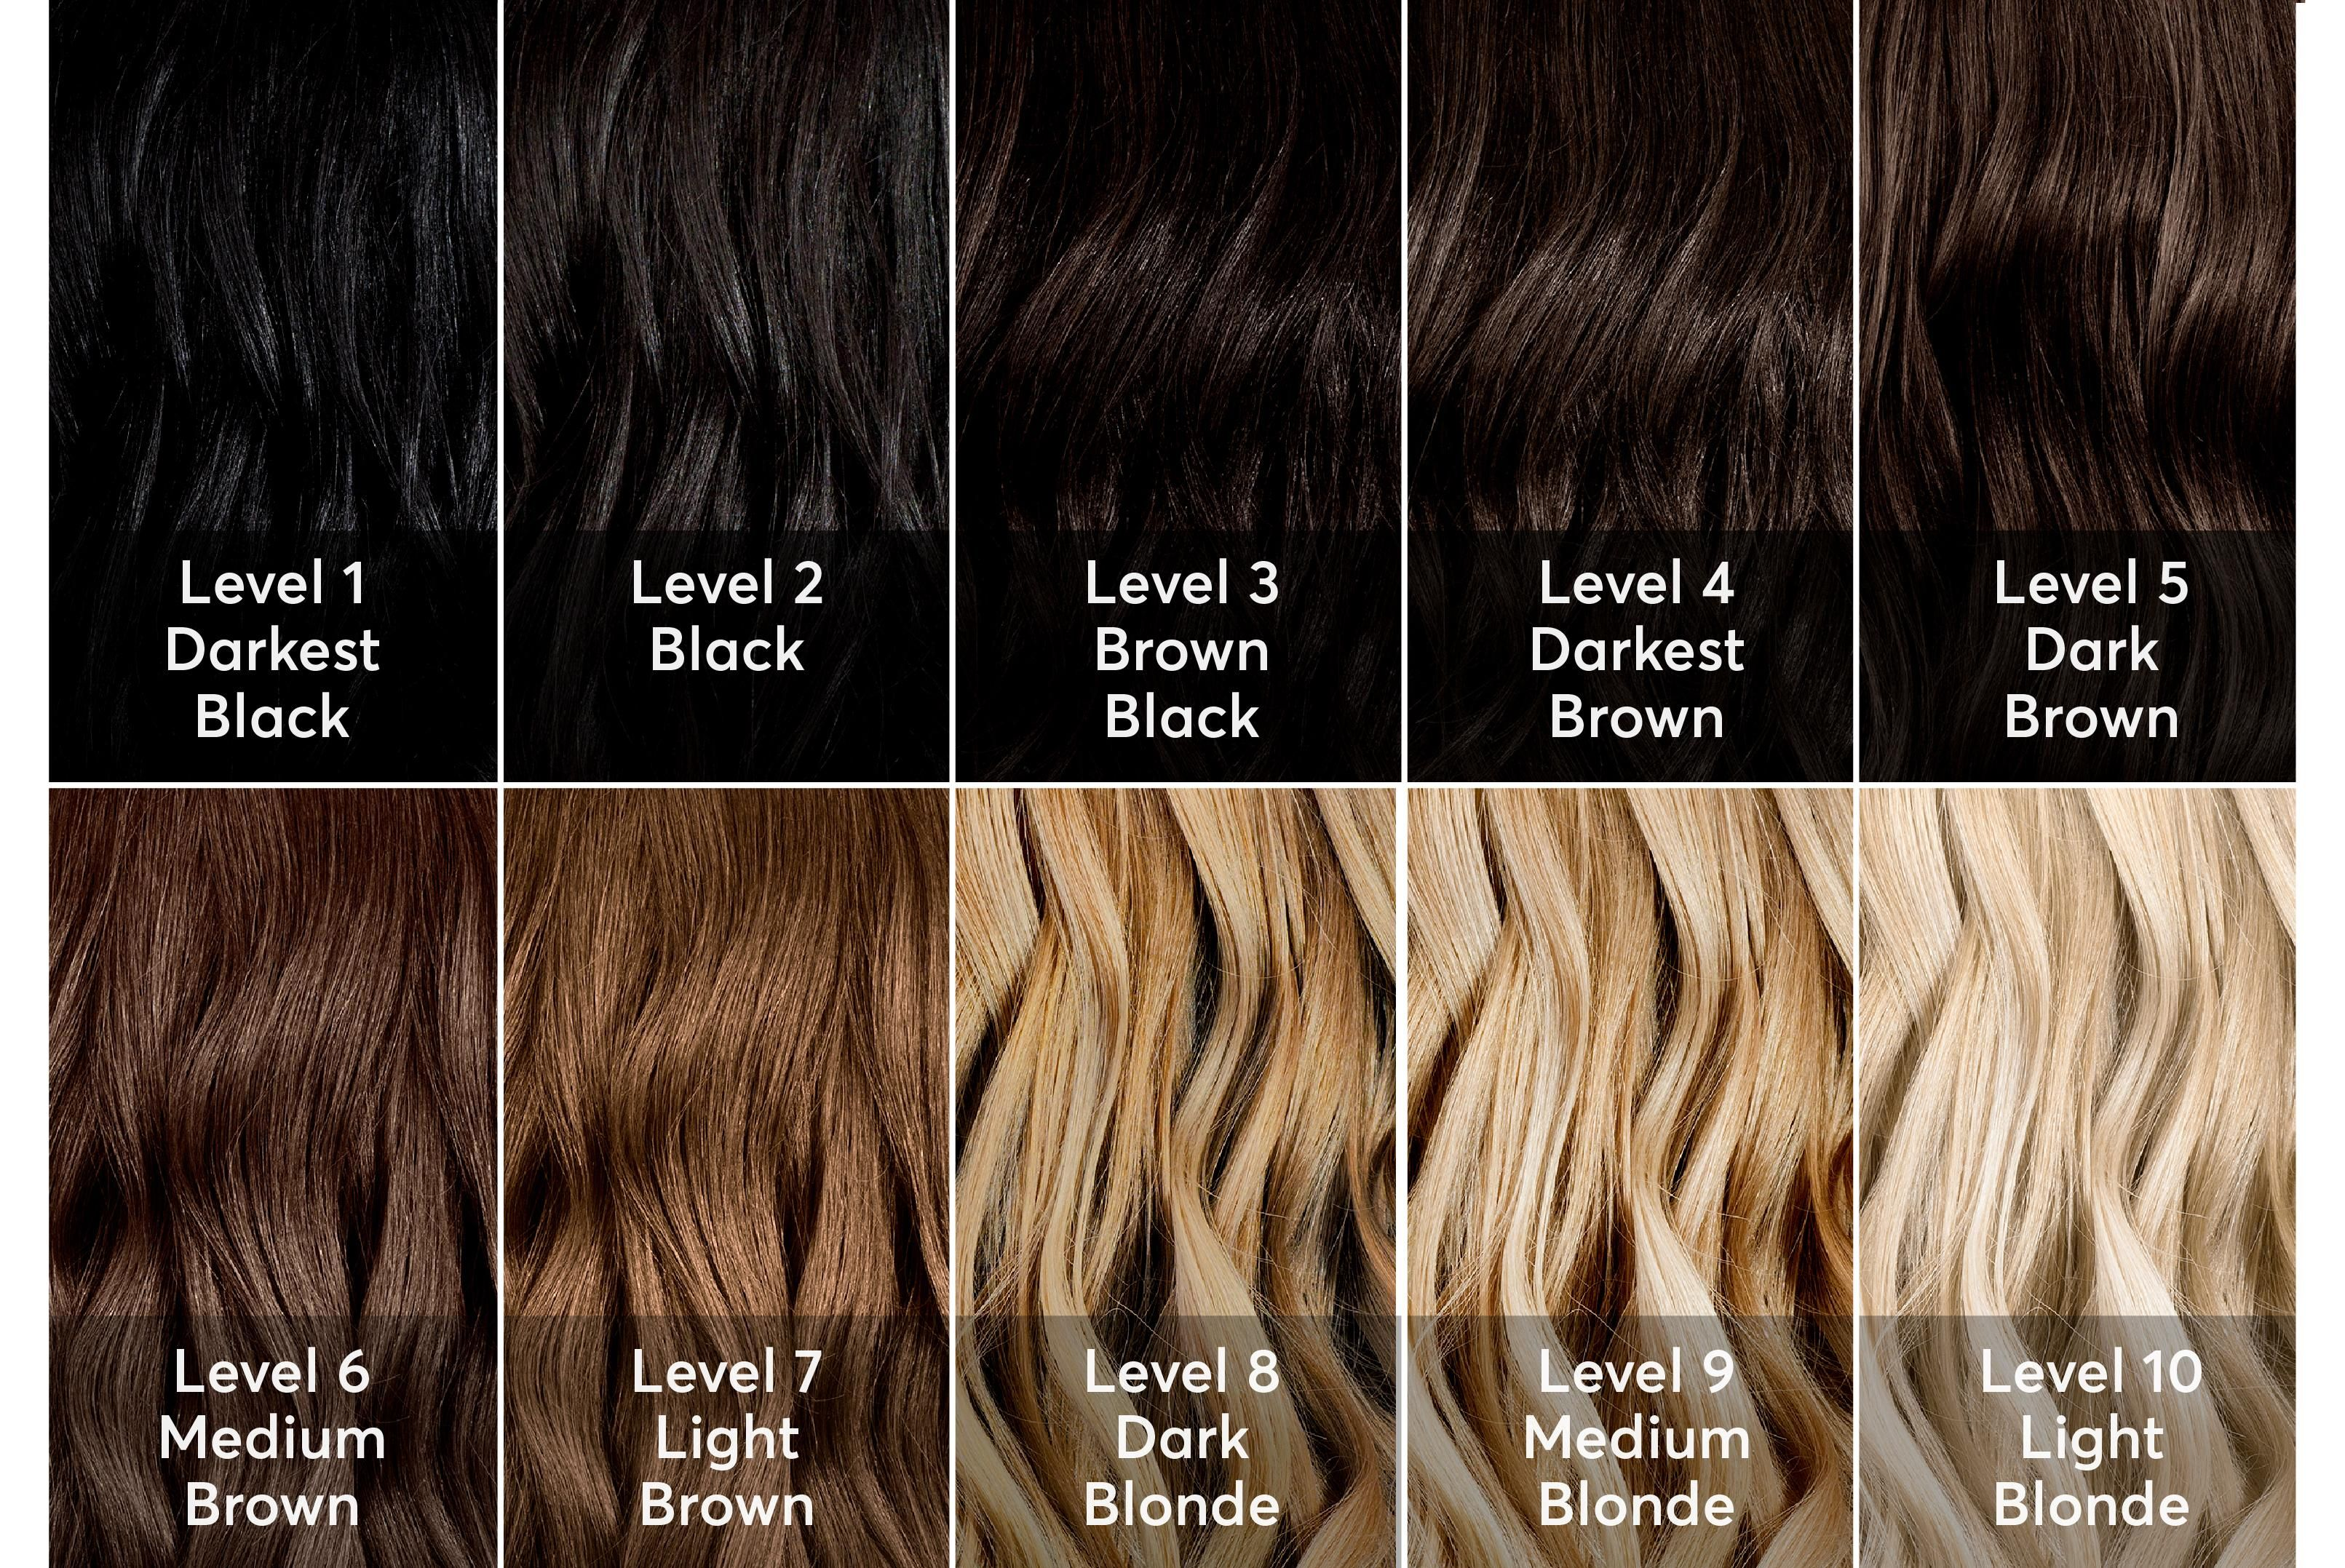 Brunette Hair Color Choices In 2020 Brown Hair Color Chart